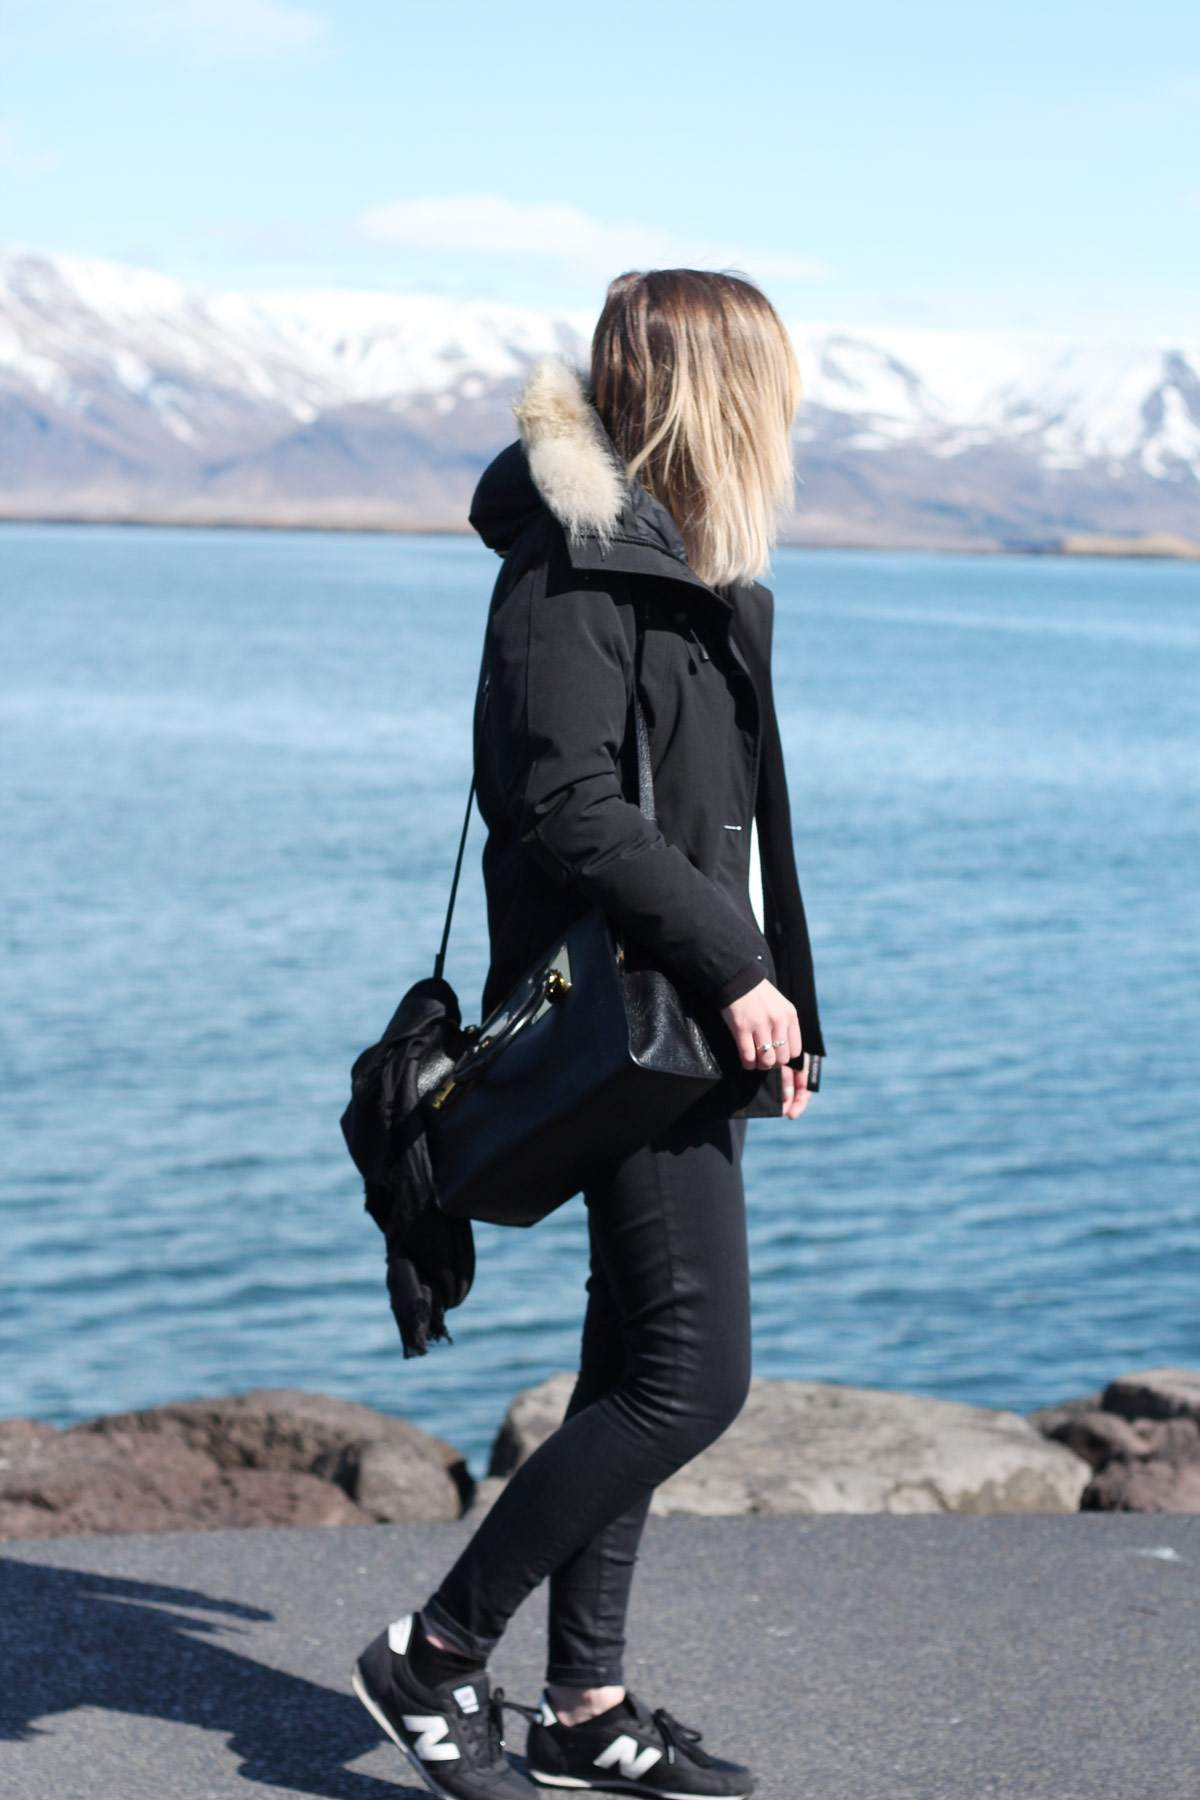 iceland-reykjavik-keflavik-review-photo-diary-travel-blog-downtown-harbour-outfit-3